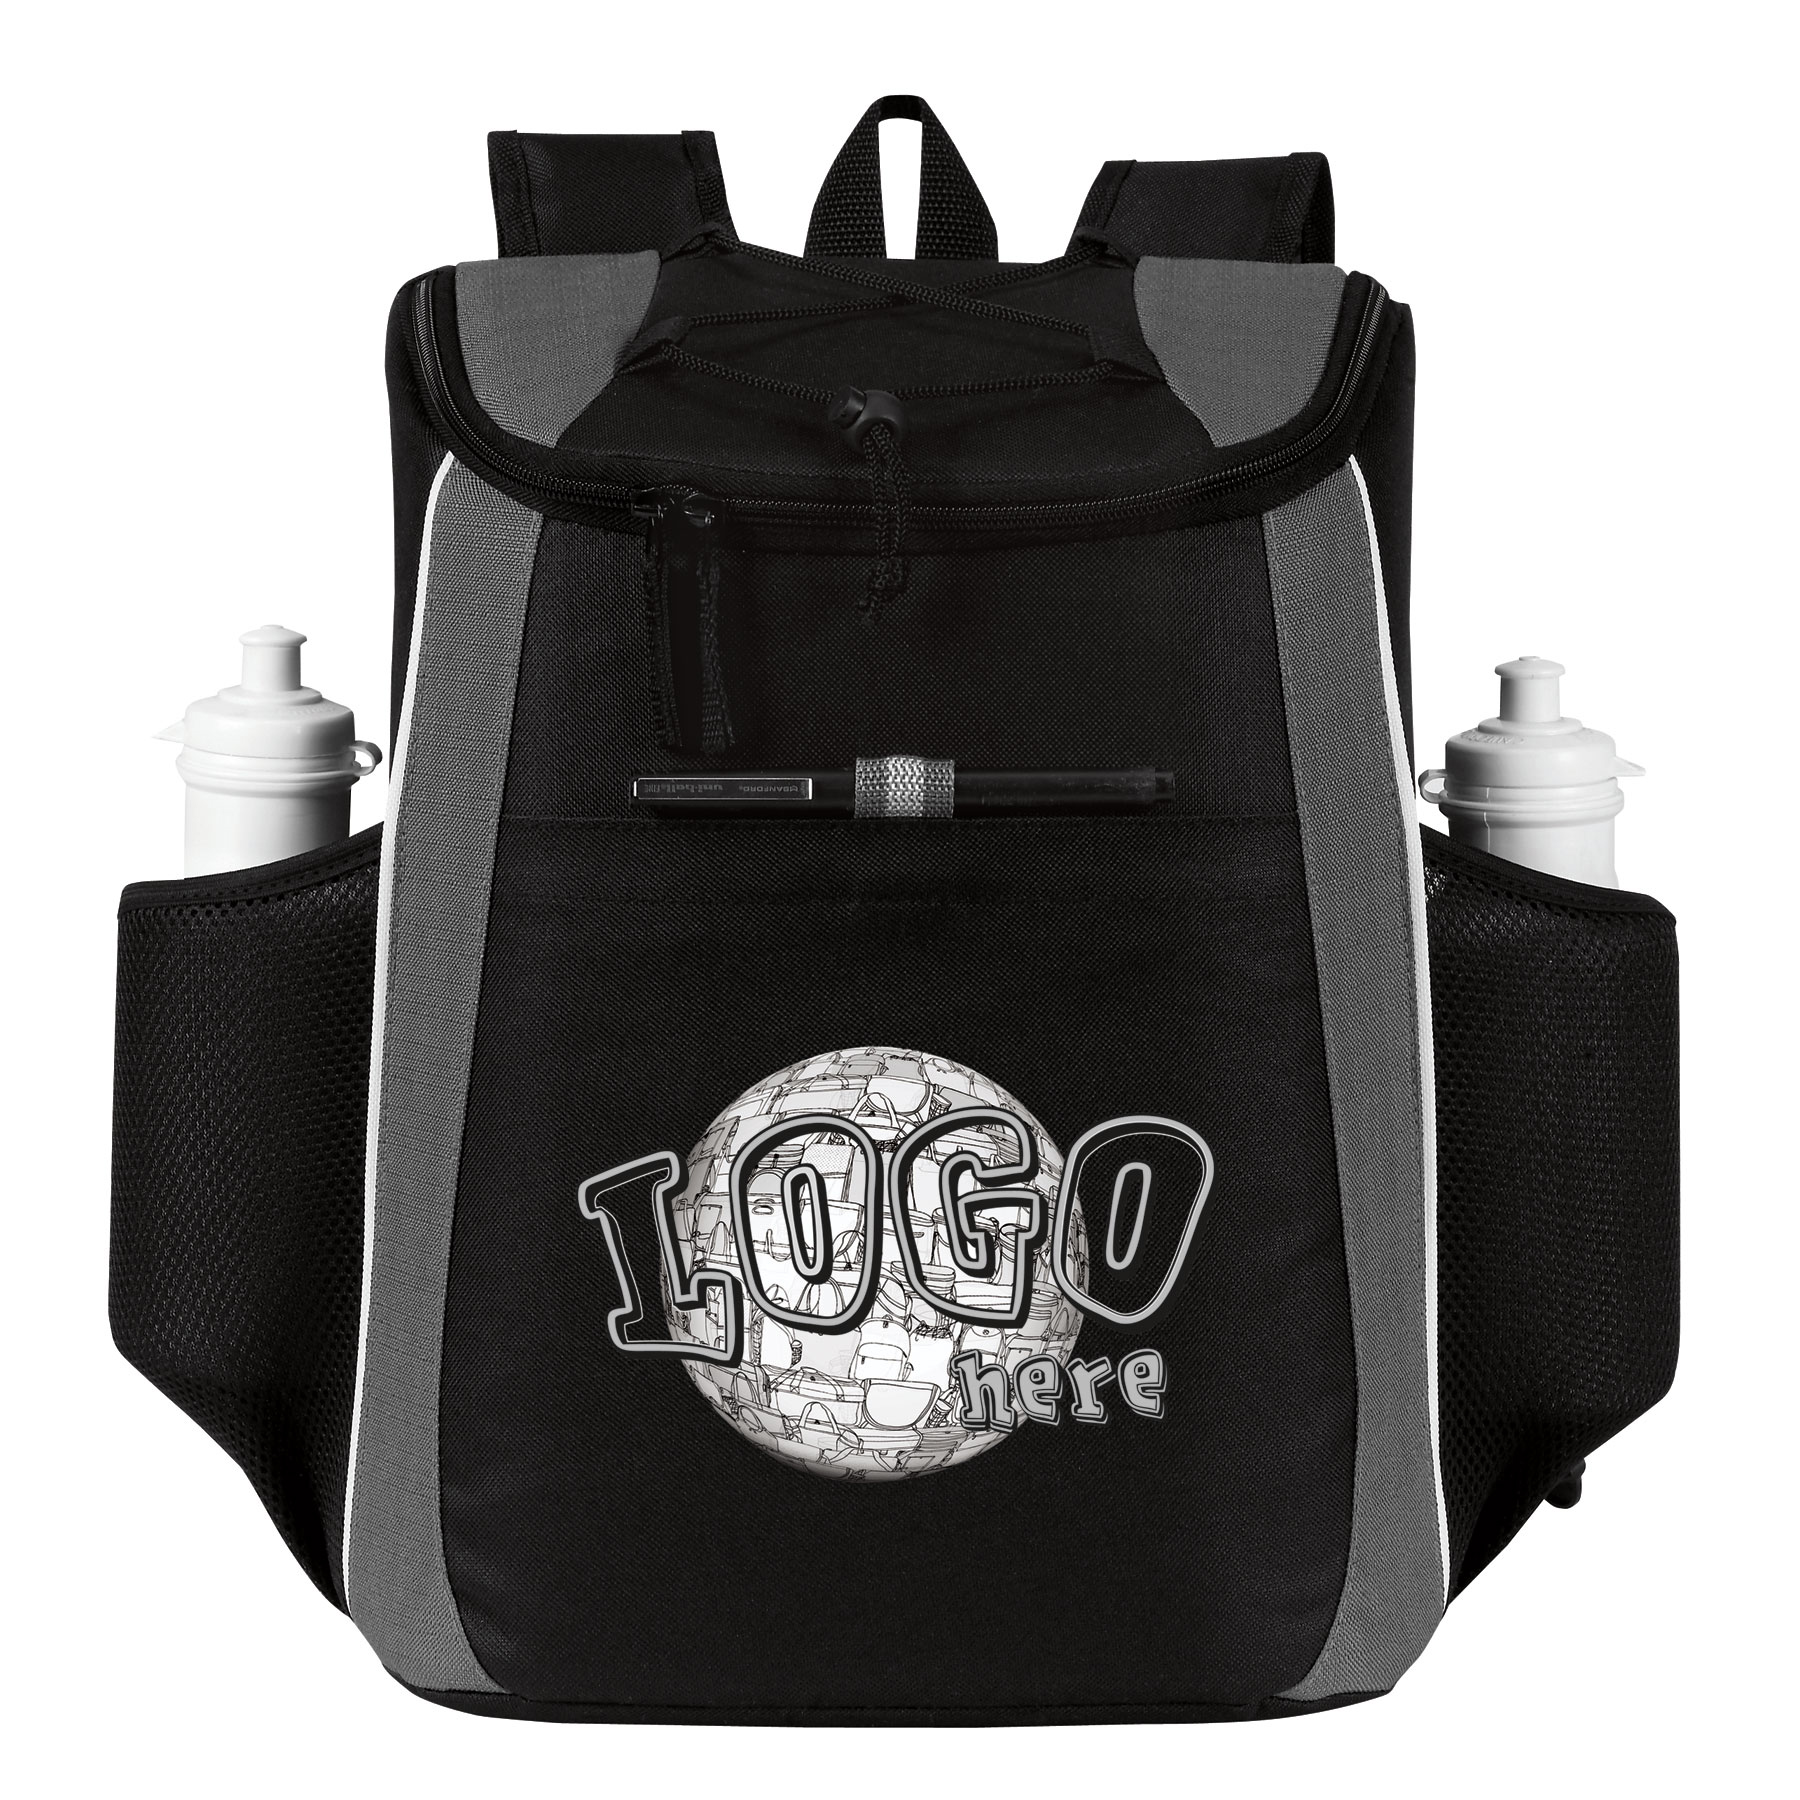 Picture of Accent 18 Cans Cooler Backpack